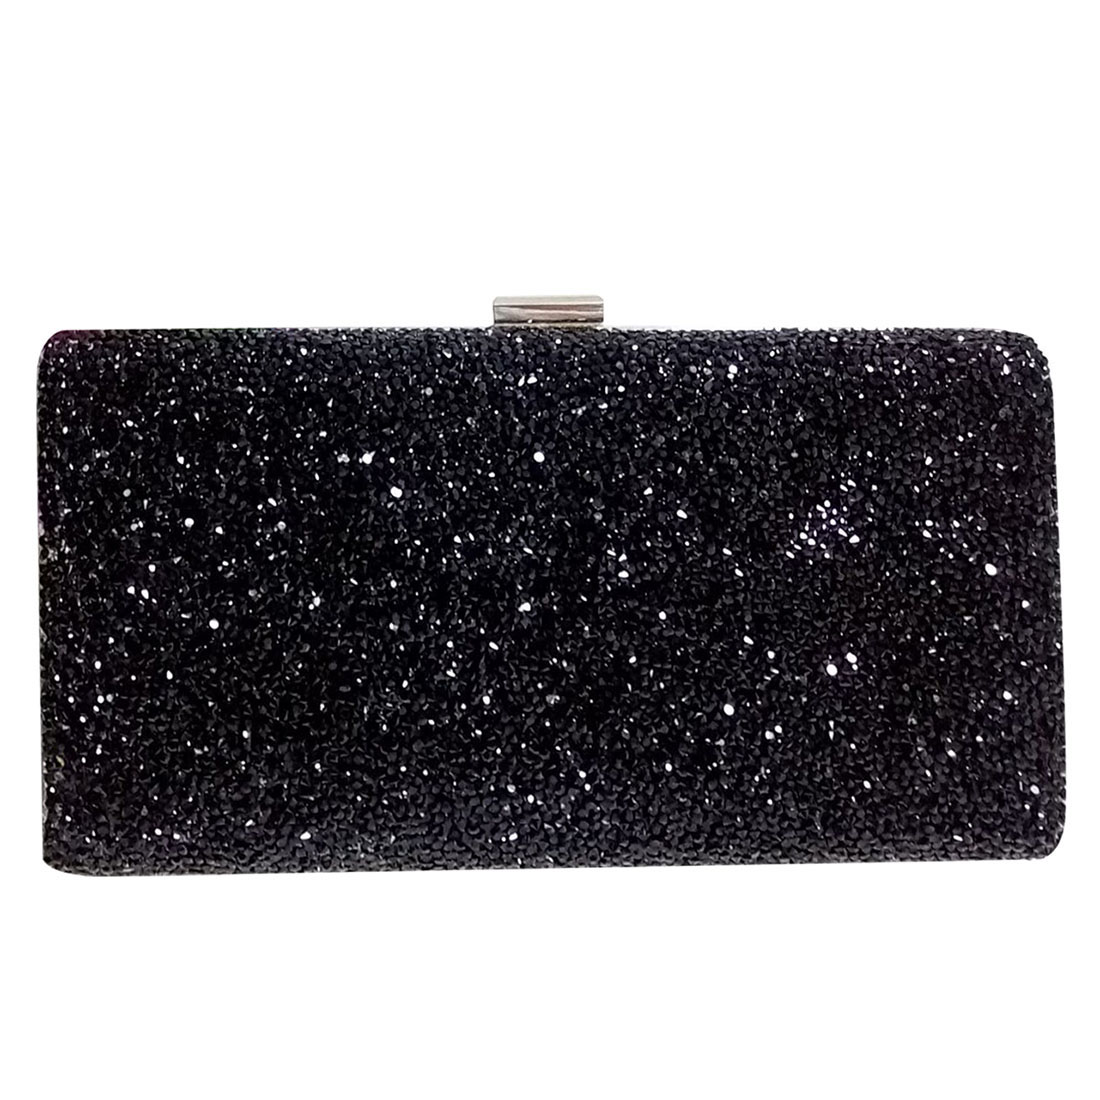 Woman Evening bag Women Diamond Rhinestone Clutch Crystal Day Clutch Wallet Wedding Purse Party Banquet, Black woman evening bag for cocktail gold diamond rhinestone clutch bag crystal day clutch wallet wedding purse party banquet bag